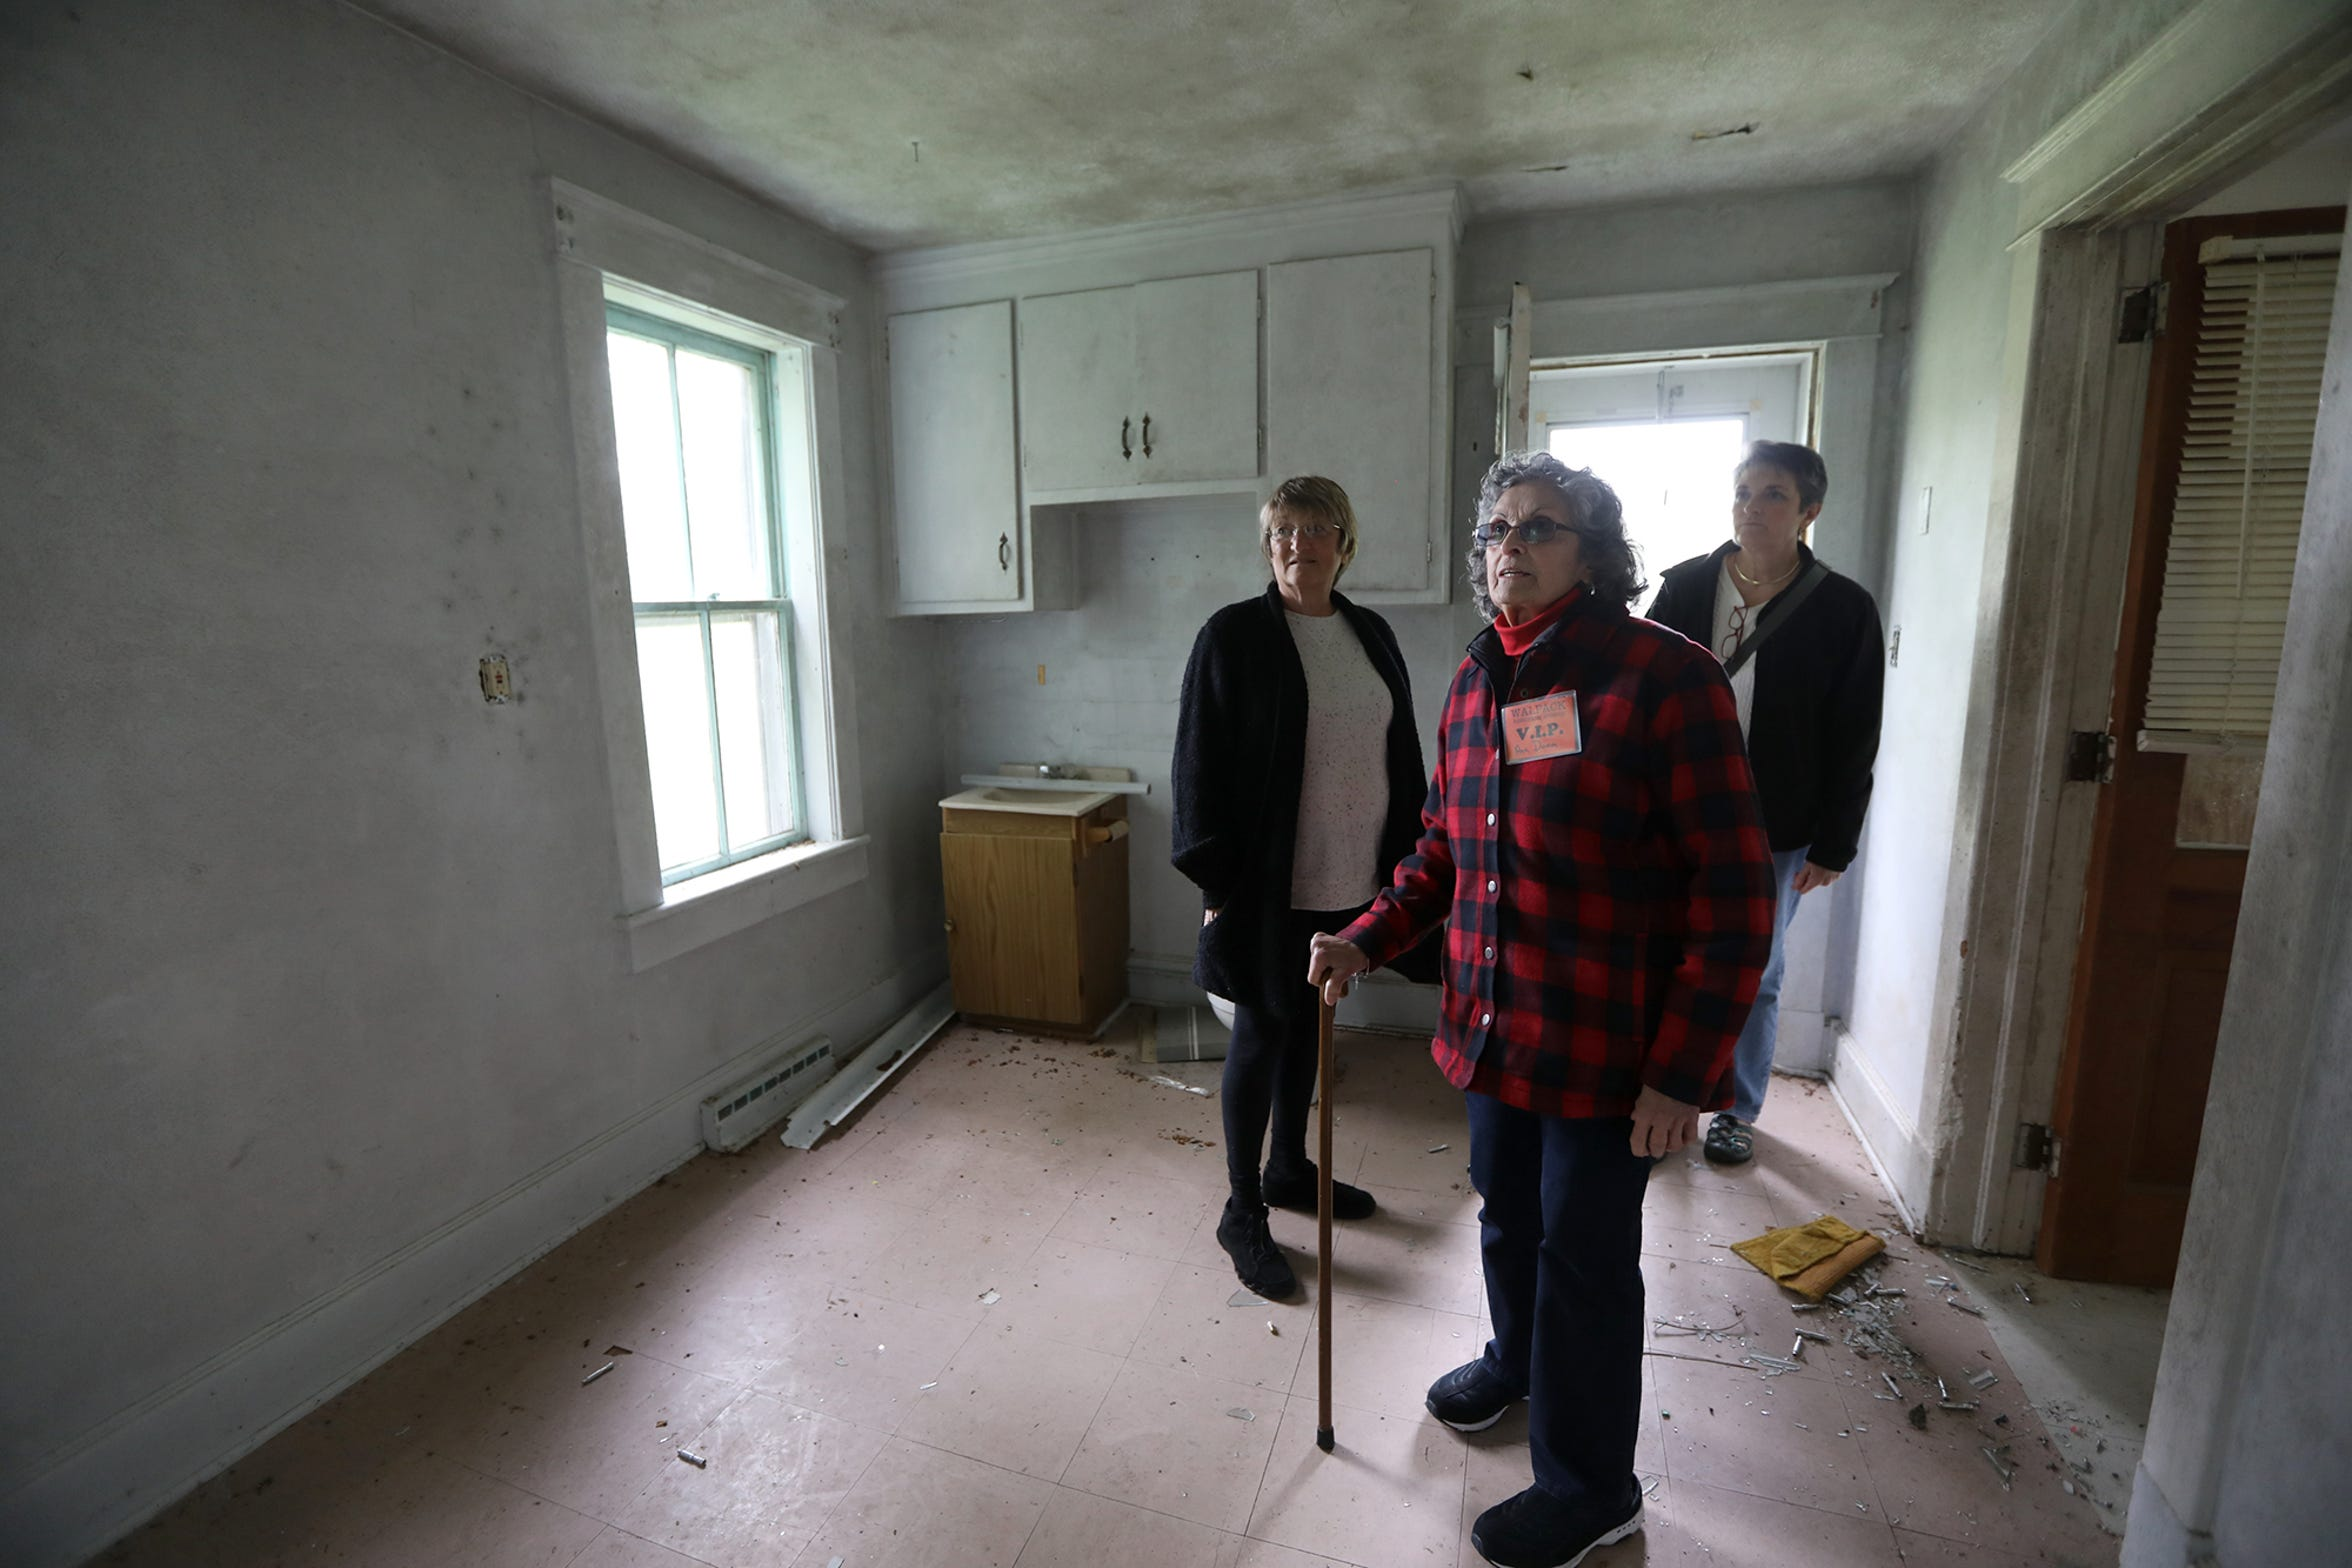 Ann Dunn is shown with family in the home where she grew up. The Walpack home has been abandoned for years and has fallen into disarray. Sunday, September 23, 2018